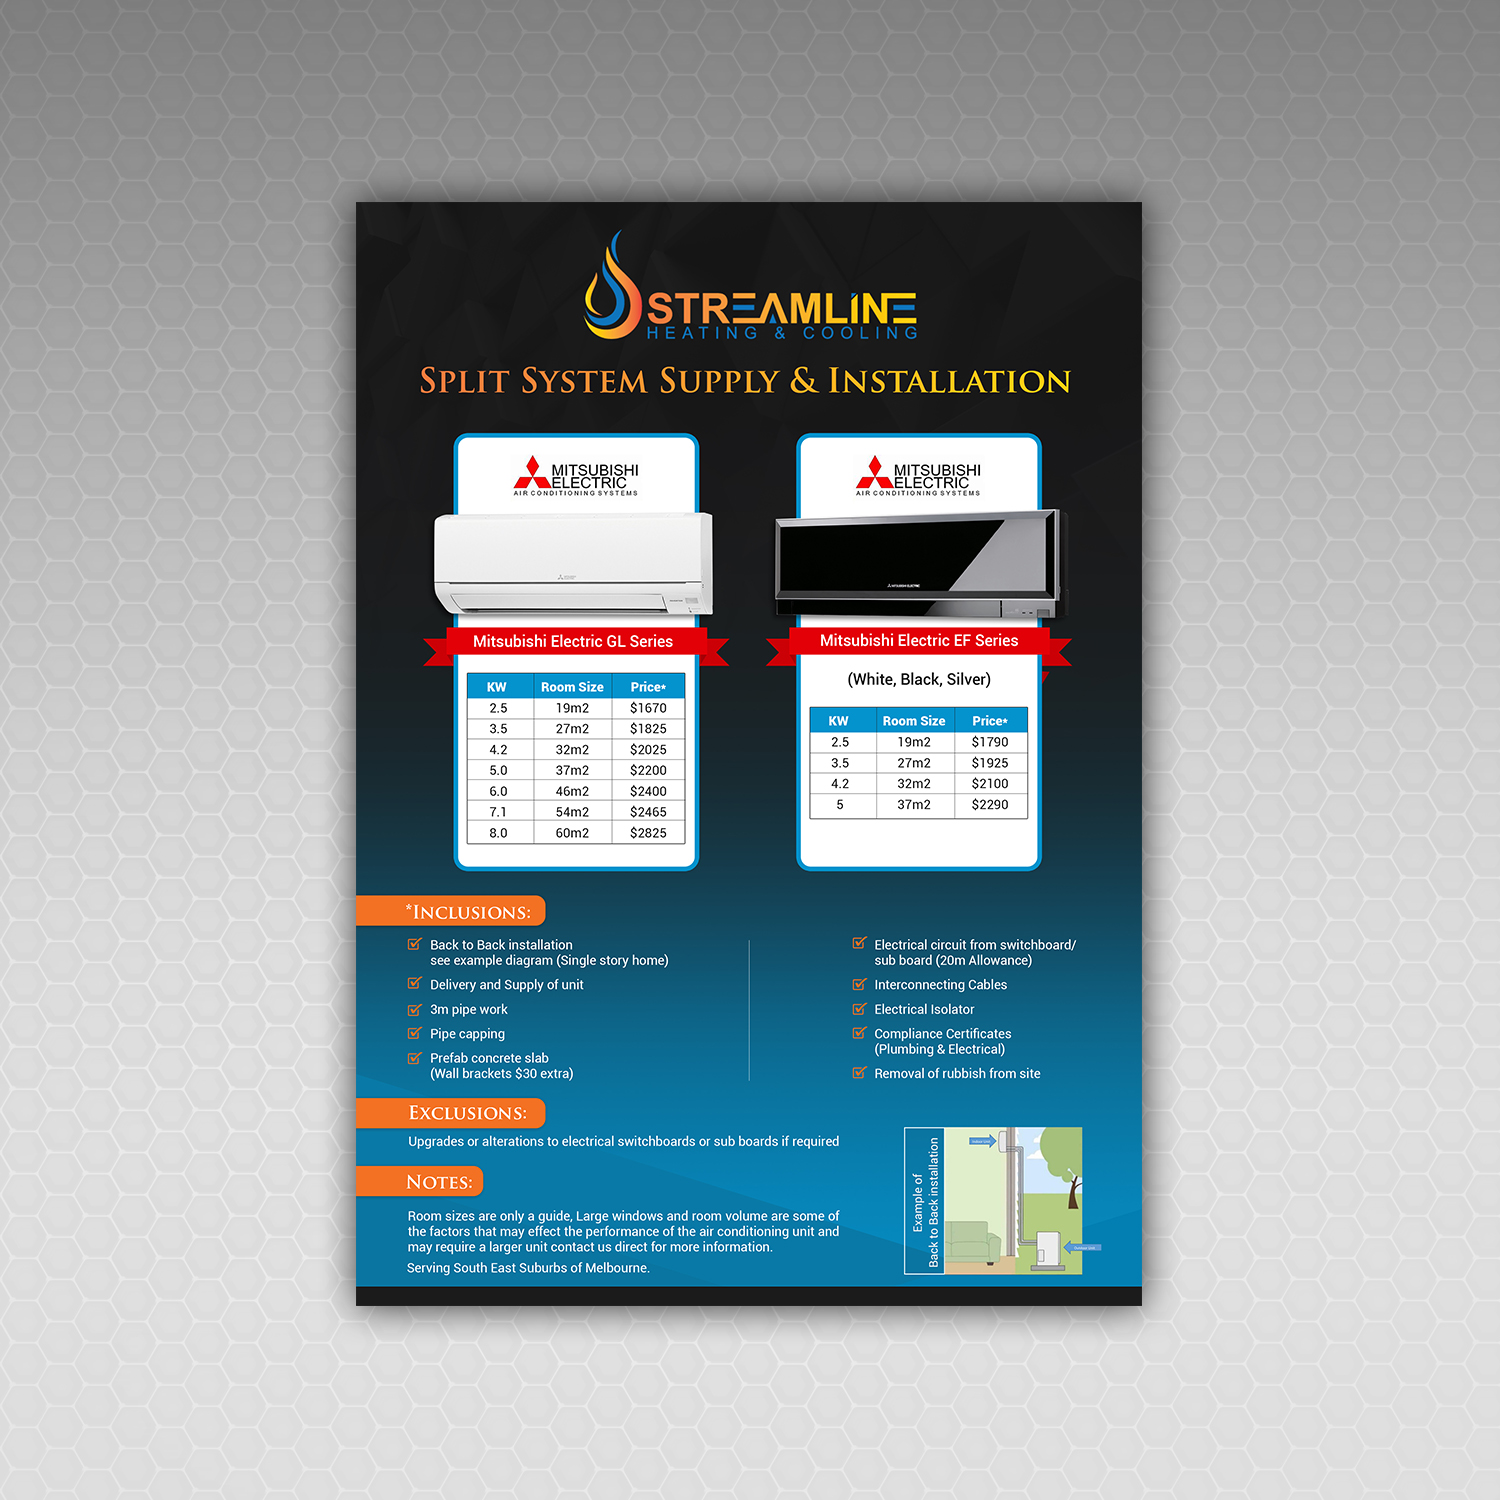 Serious Elegant Air Conditioning Flyer Design For Streamline Electric Circuit By Hih7 Heating Cooling 19664758